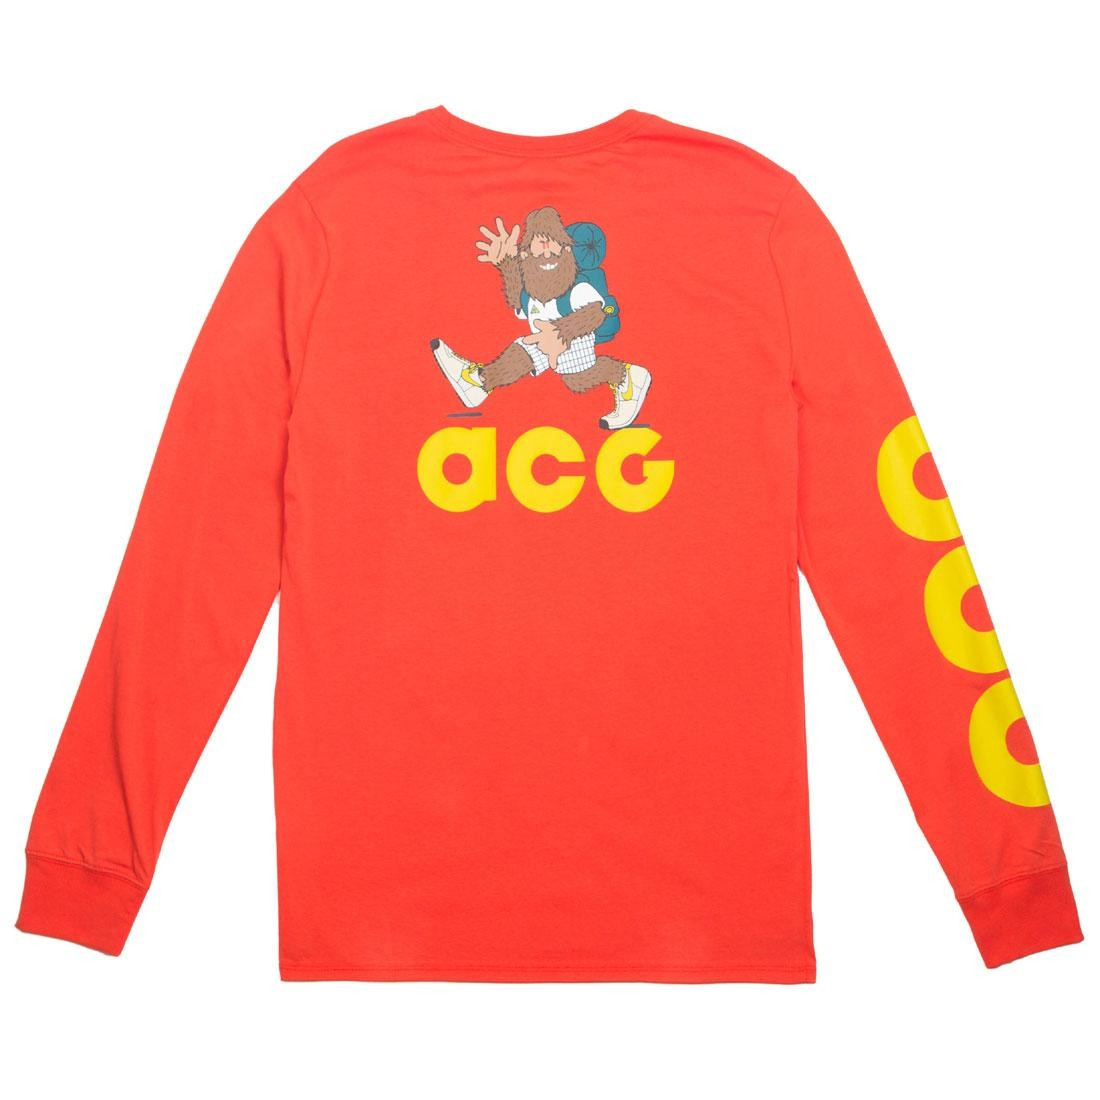 Nike Men Sportswear Acg Long Sleeve Tee (habanero red / bright citron)